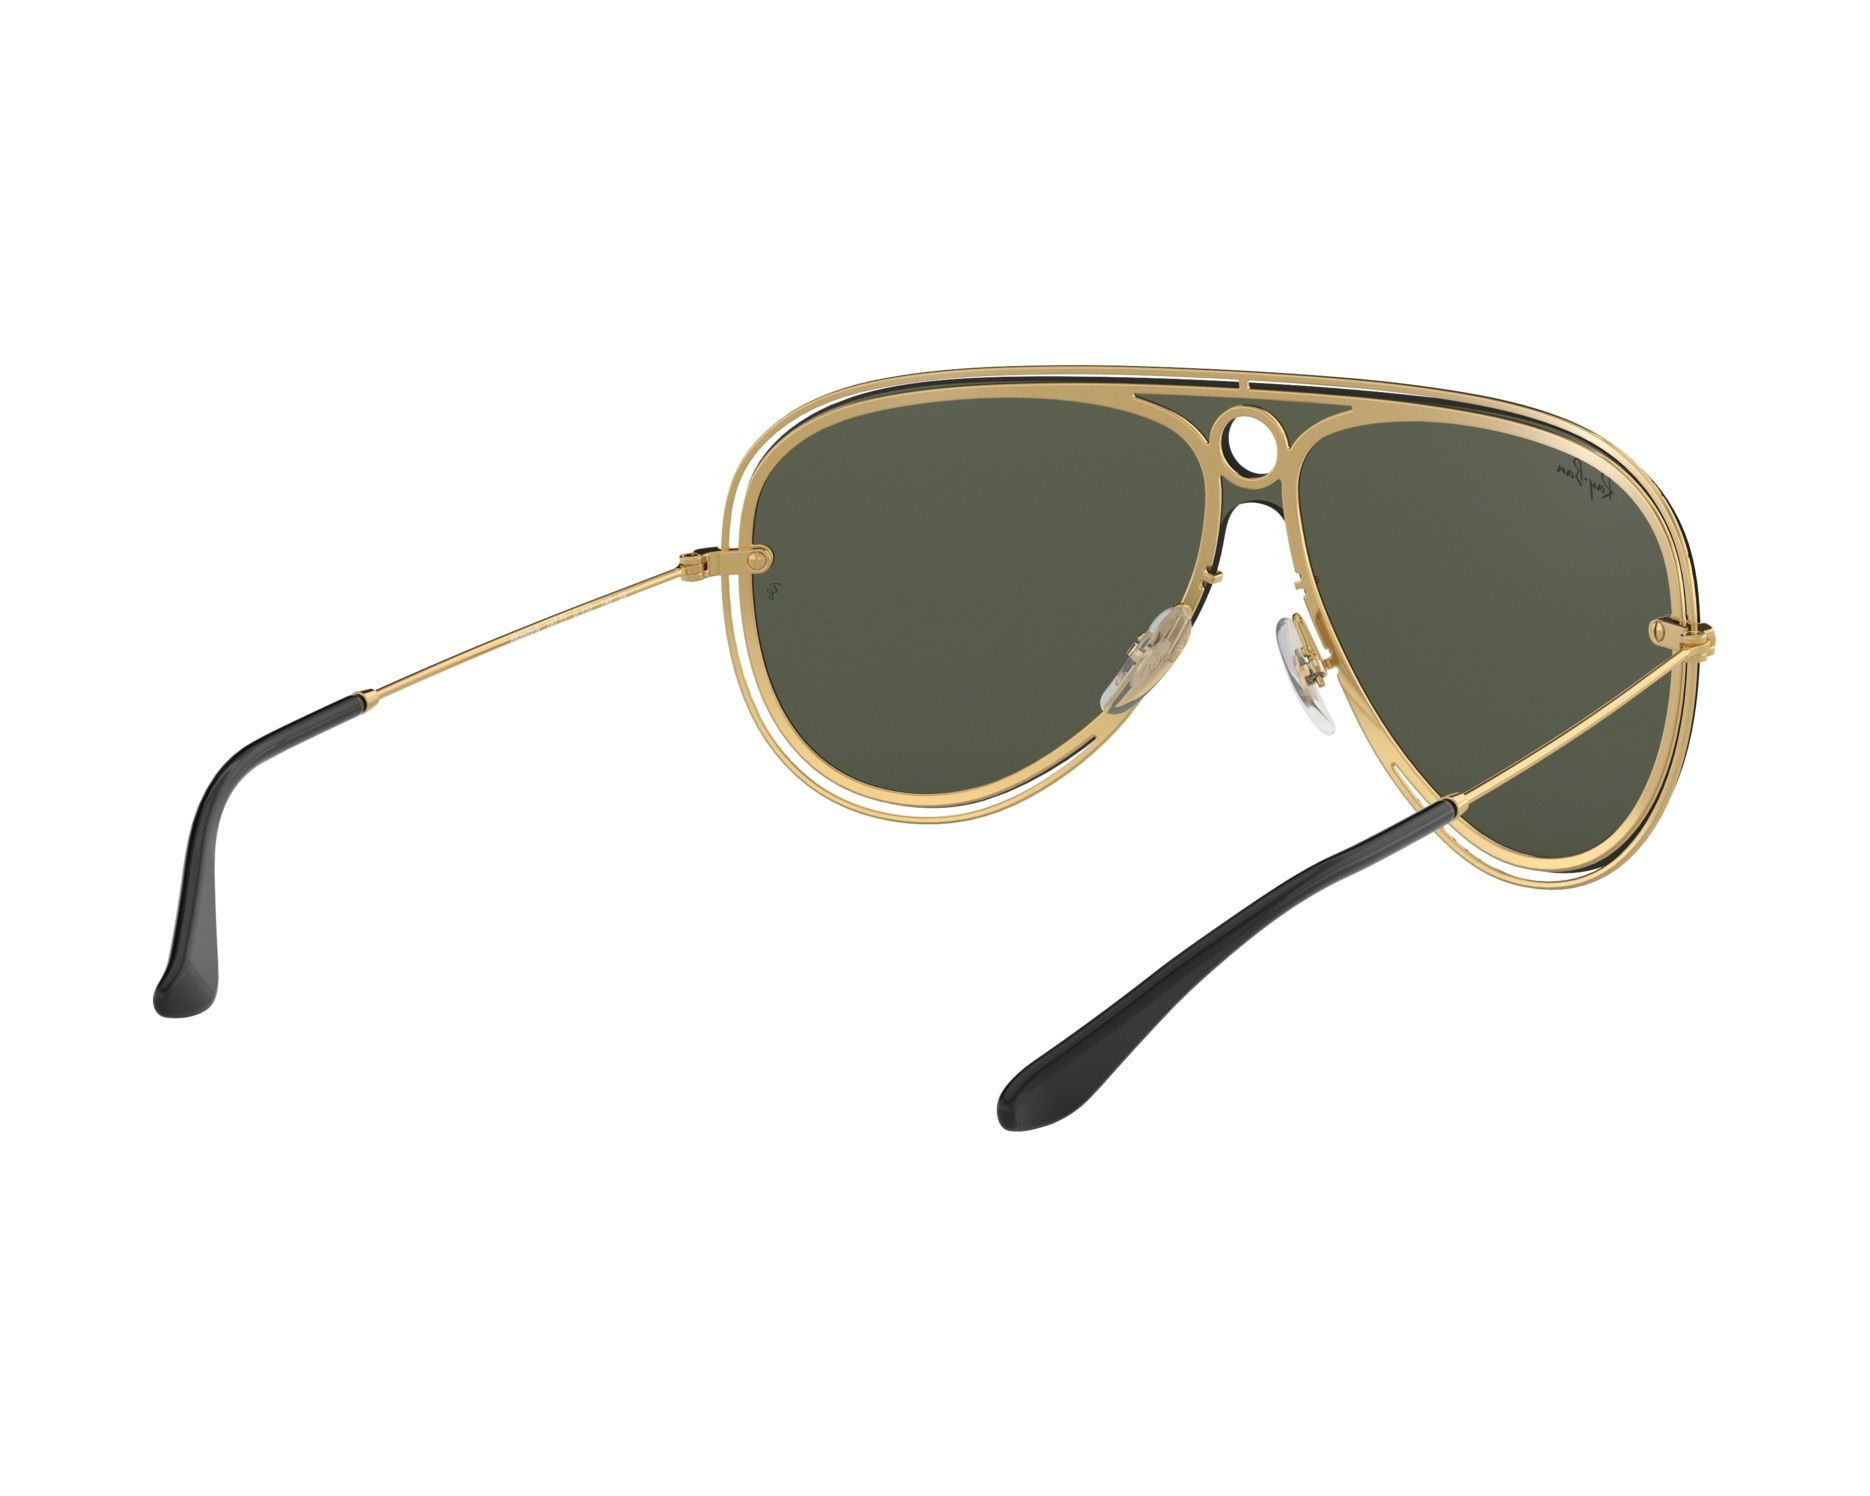 Buy Ray-Ban 0rbnu61blaze Aviator Non-Polarized Iridium Sunglasses, Copper, 61 mm and other Sunglasses at robyeread.ml Our wide selection is eligible for free shipping and free returns.